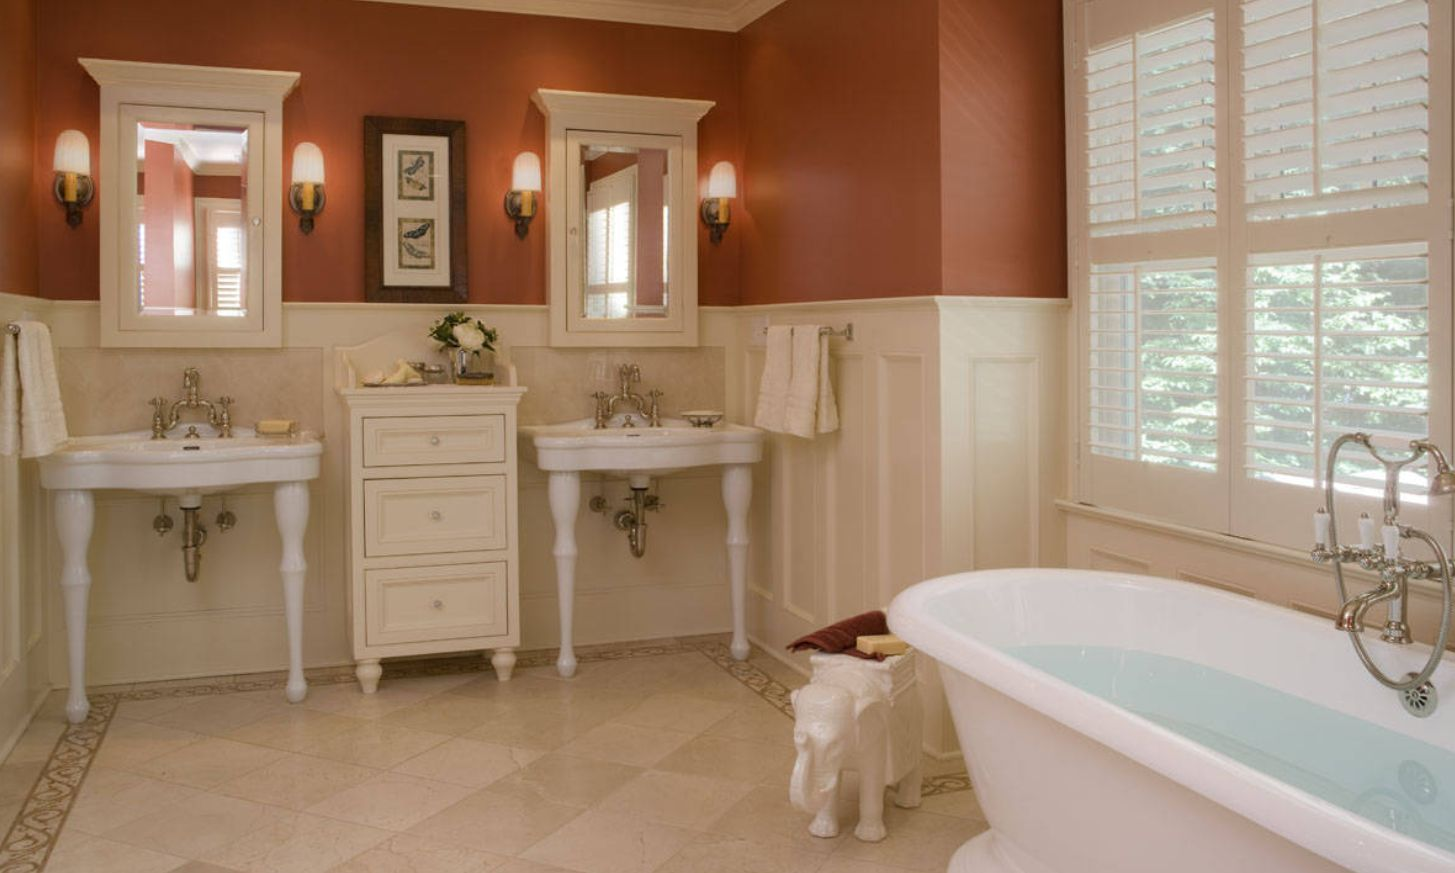 Red bathroom paint walls with wainscoting bathroom wall